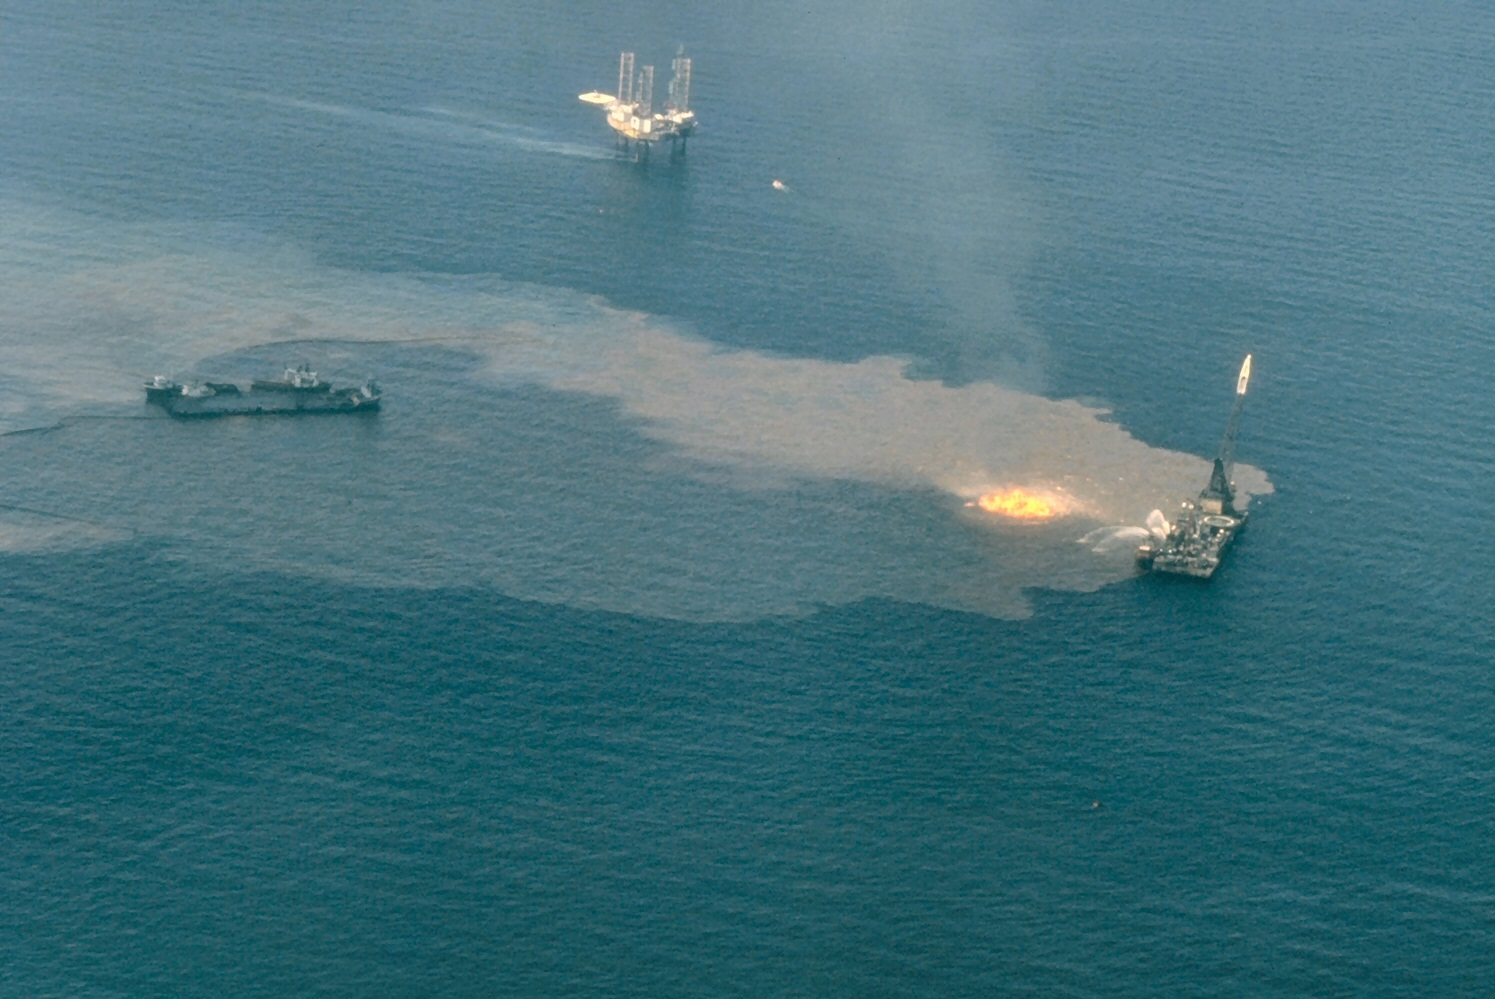 A platform at the site of the Ixtoc-I oil well blowout burns in the Bay of Campeche, Mexico. Public domain image by NOAA.